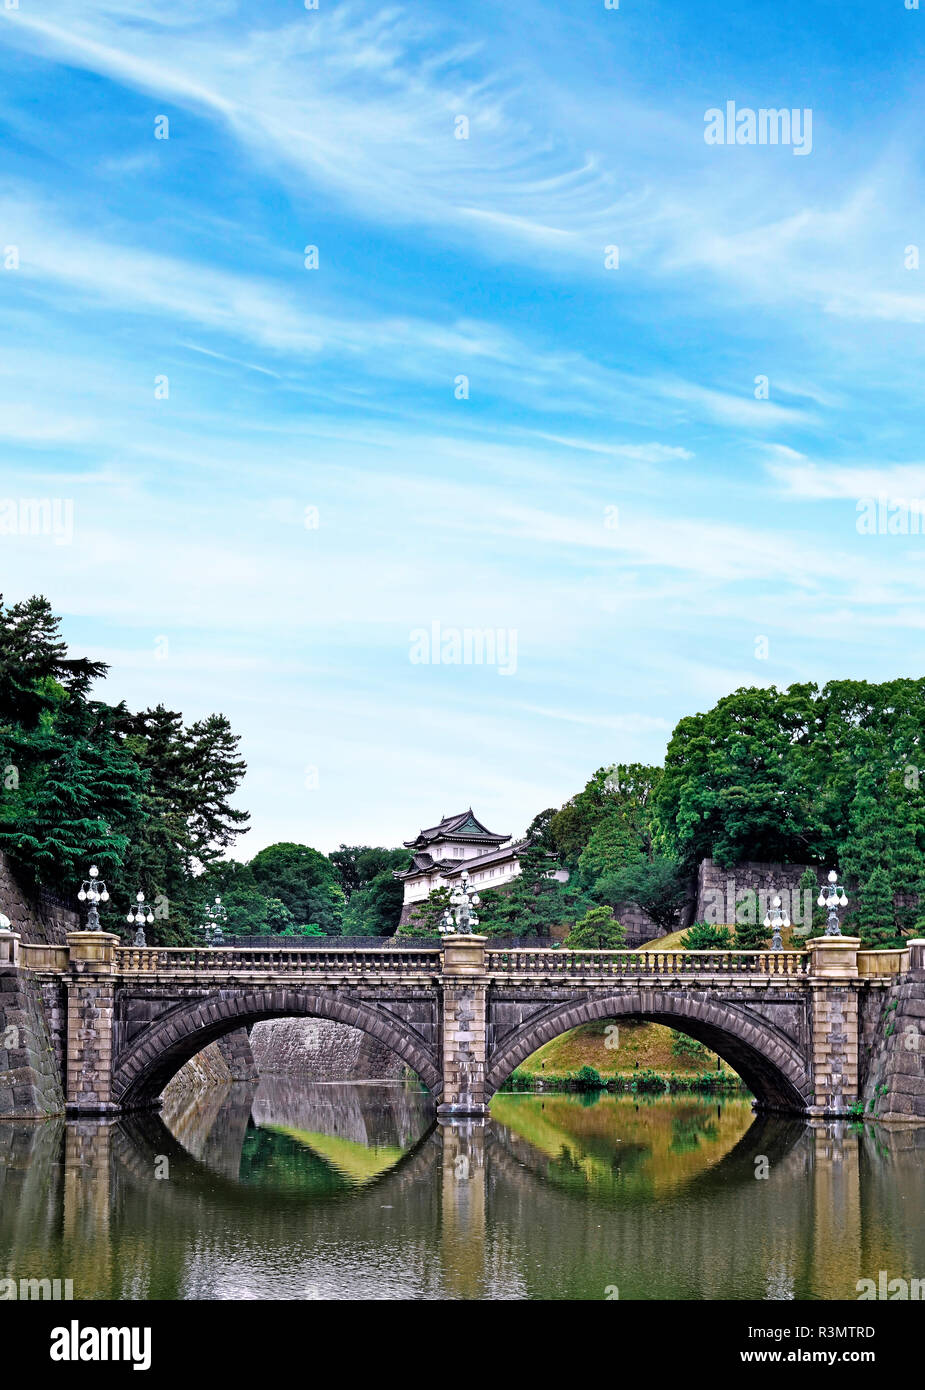 Tokyo, Japan. Imperial Palace, Edo Castle, with Nijubashi Bridge and moat - Stock Image